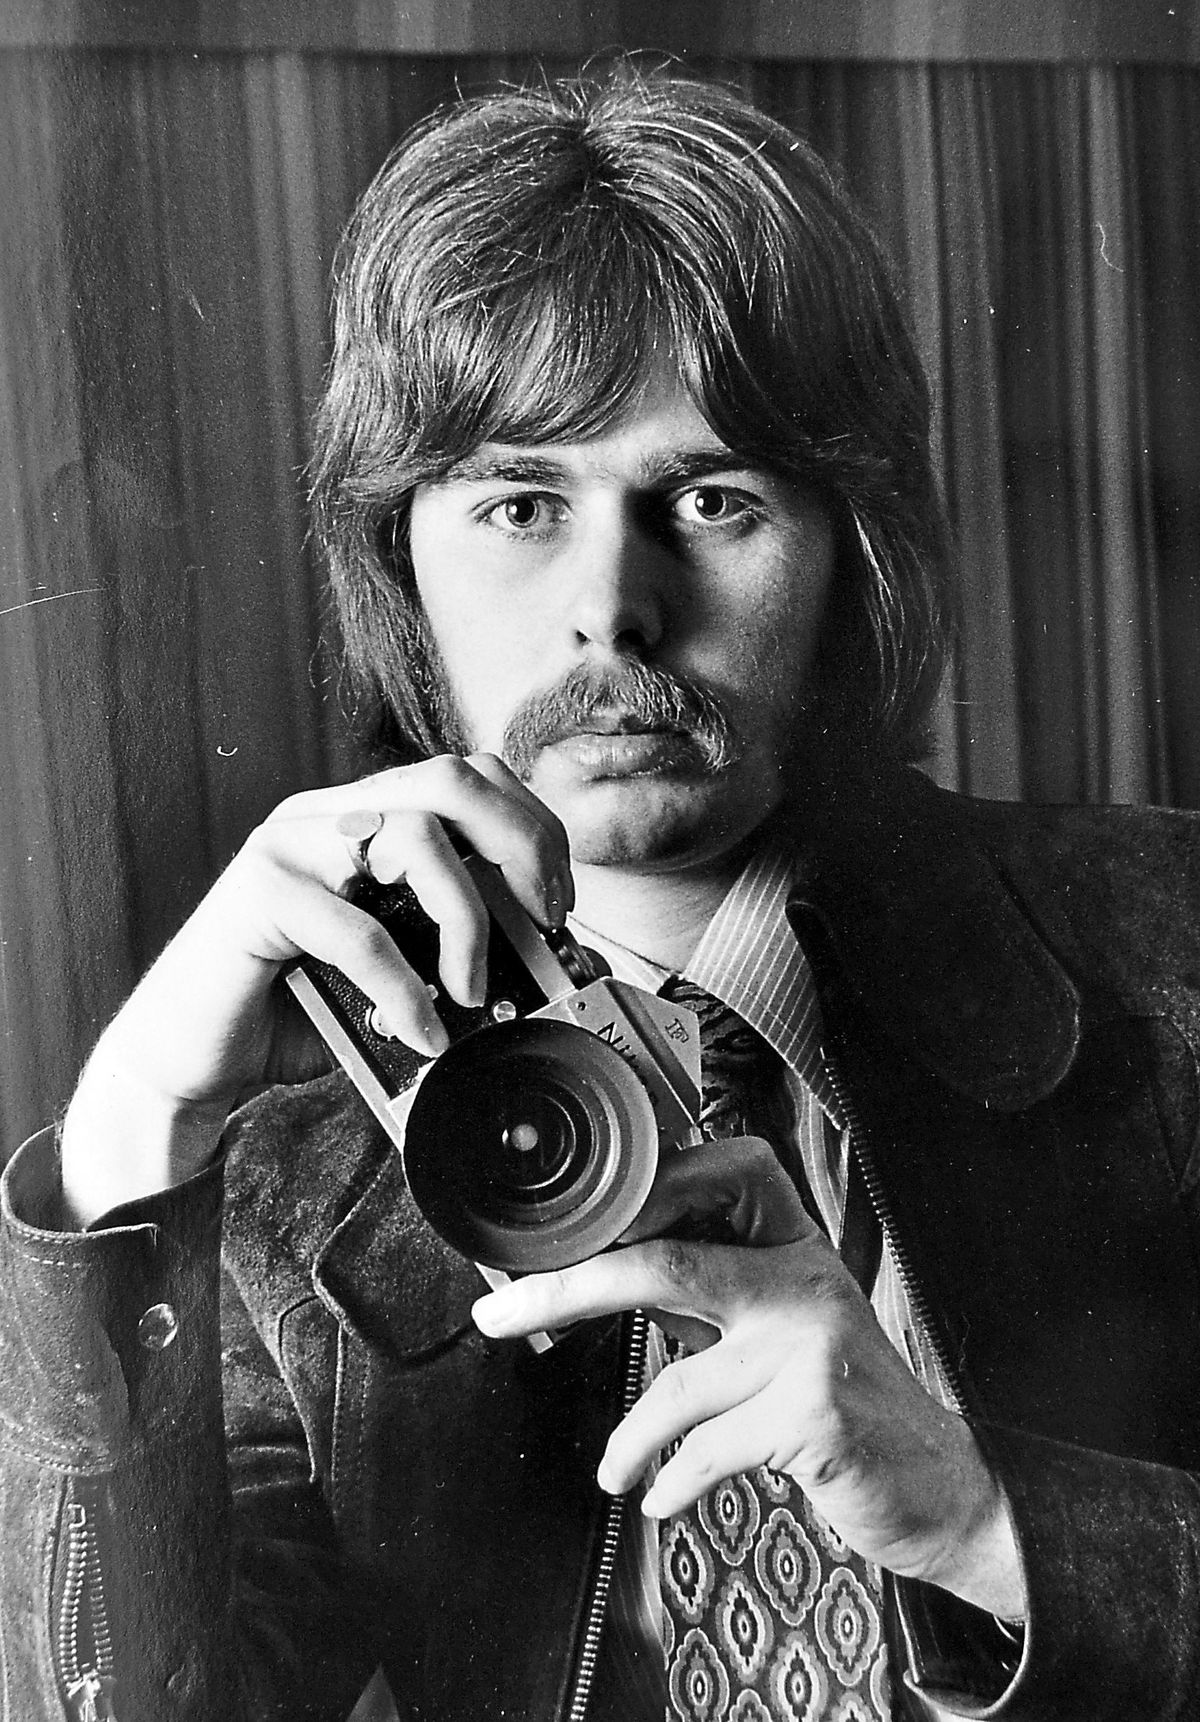 David Bagnall pictured as a young newspaper photographer in 1972